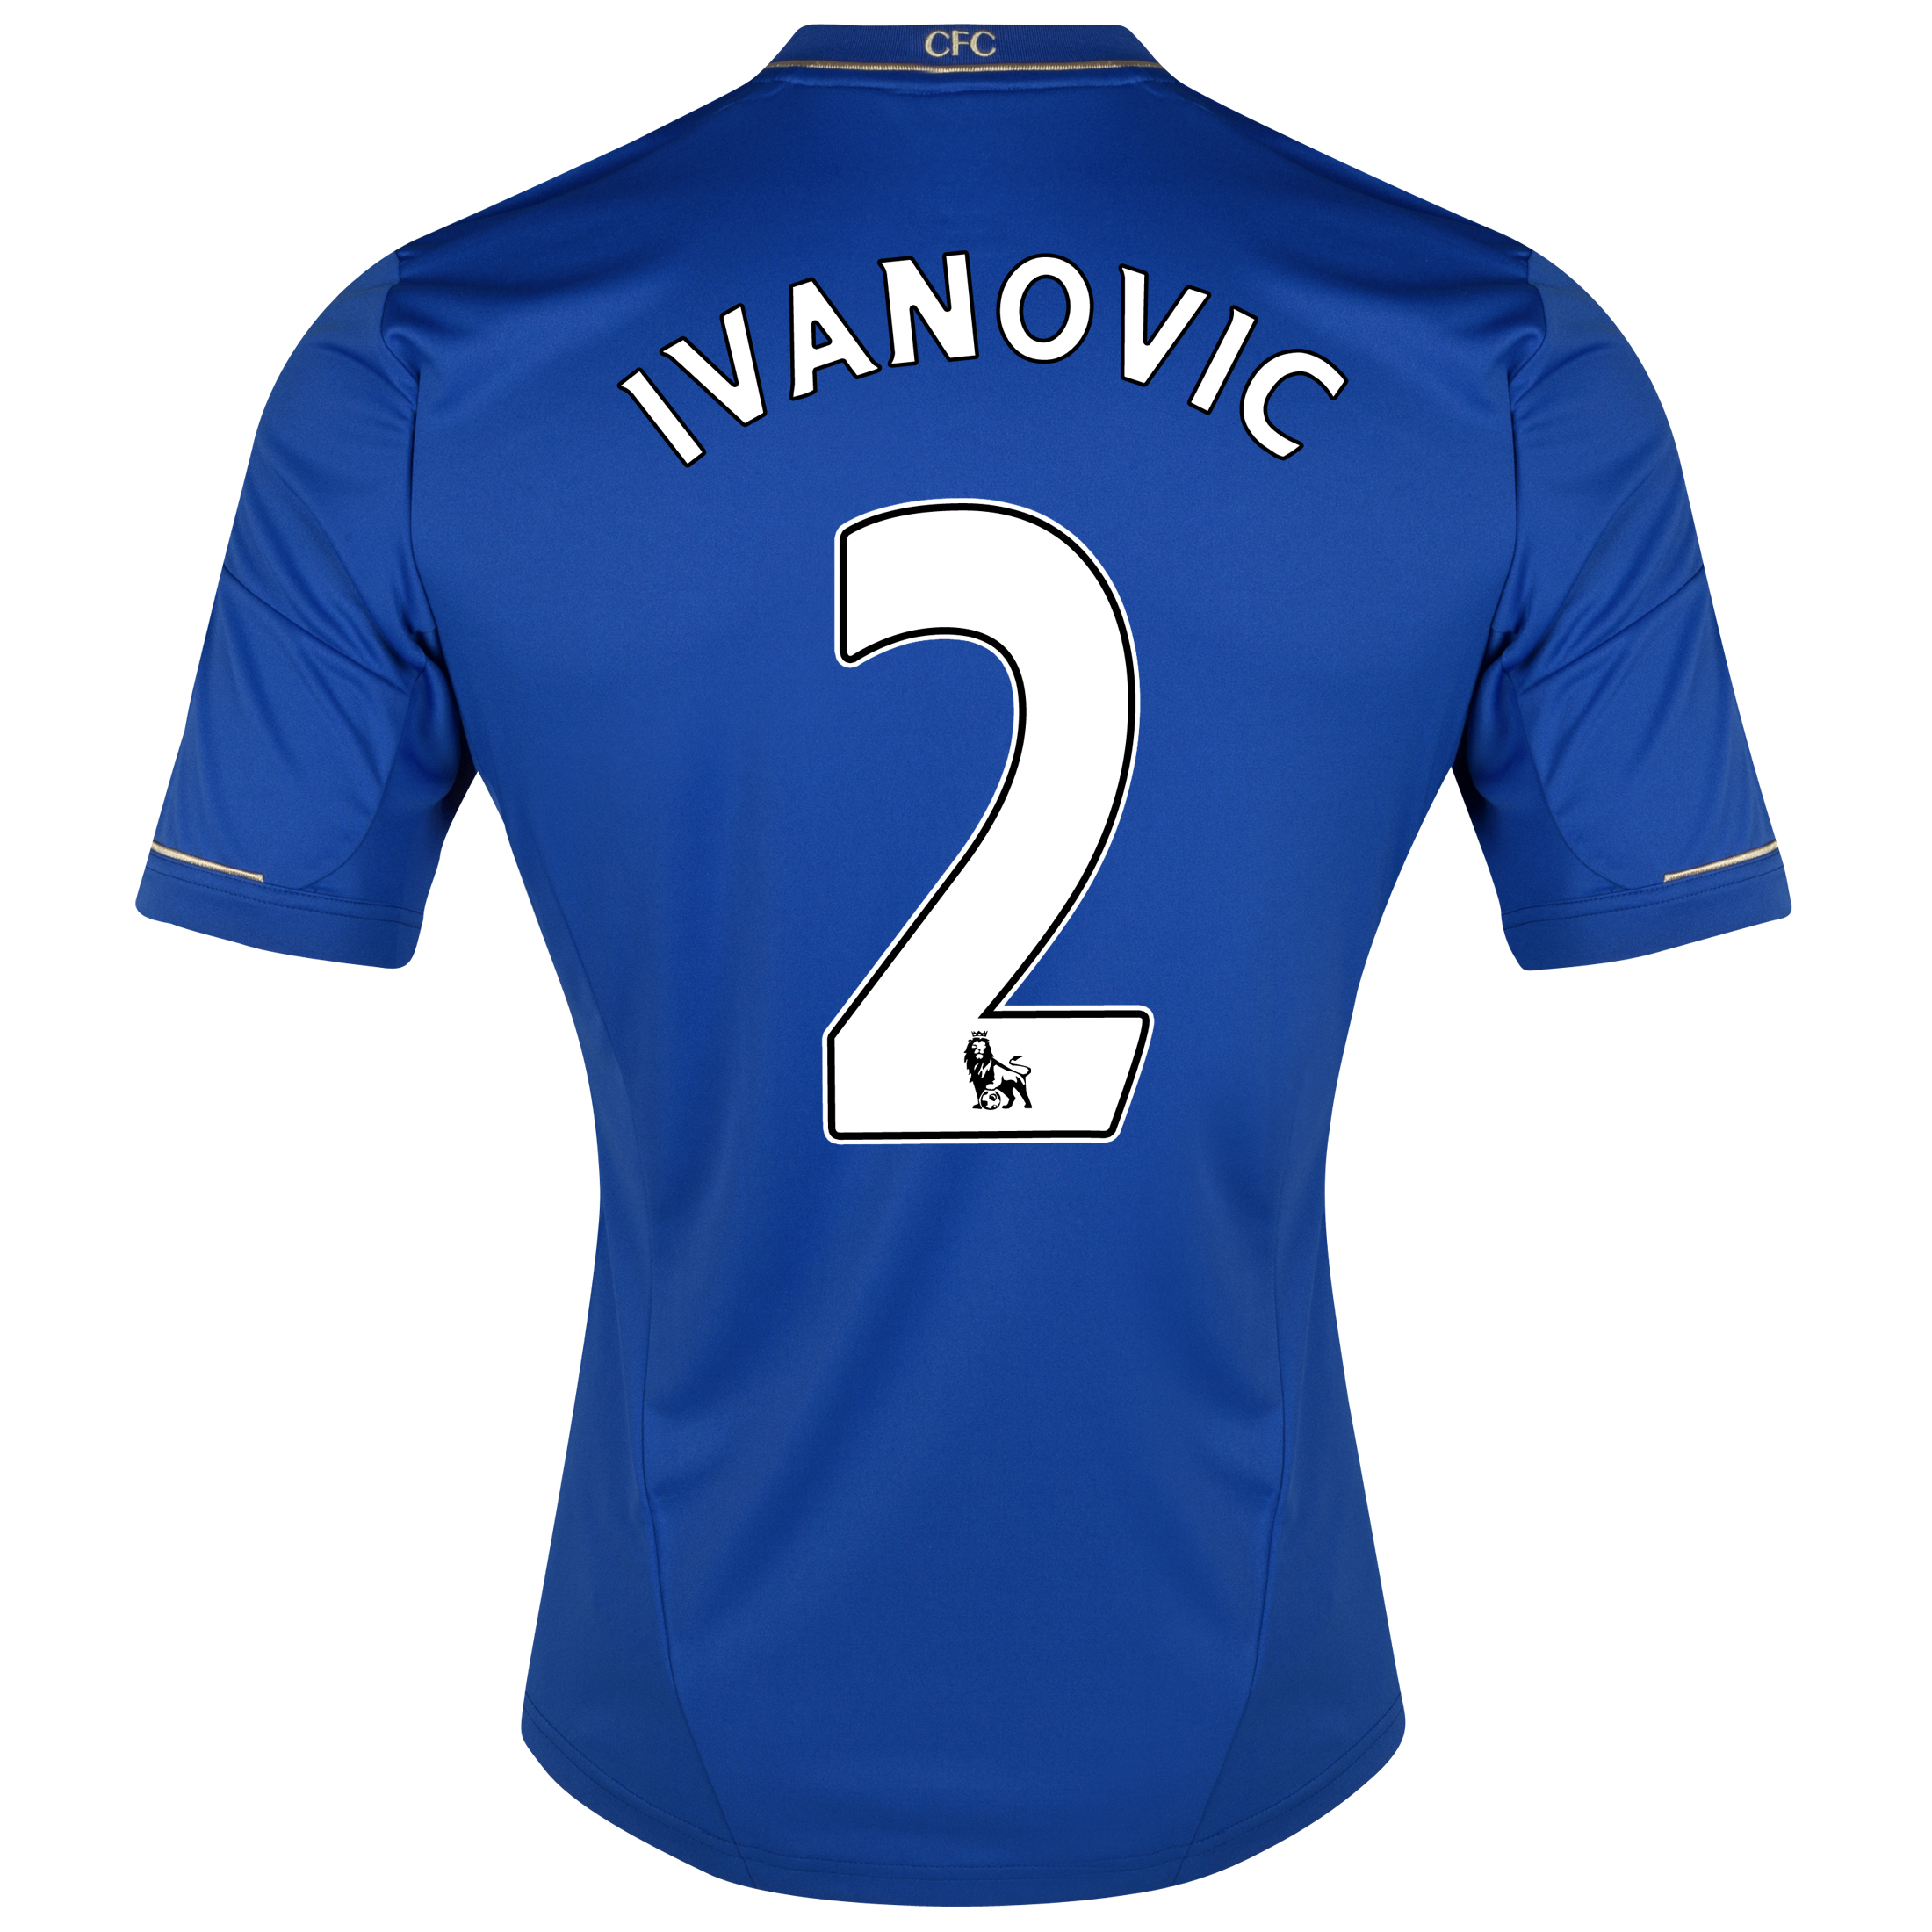 Chelsea Home Shirt 2012/13 - Youths with Ivanovic 2 printing